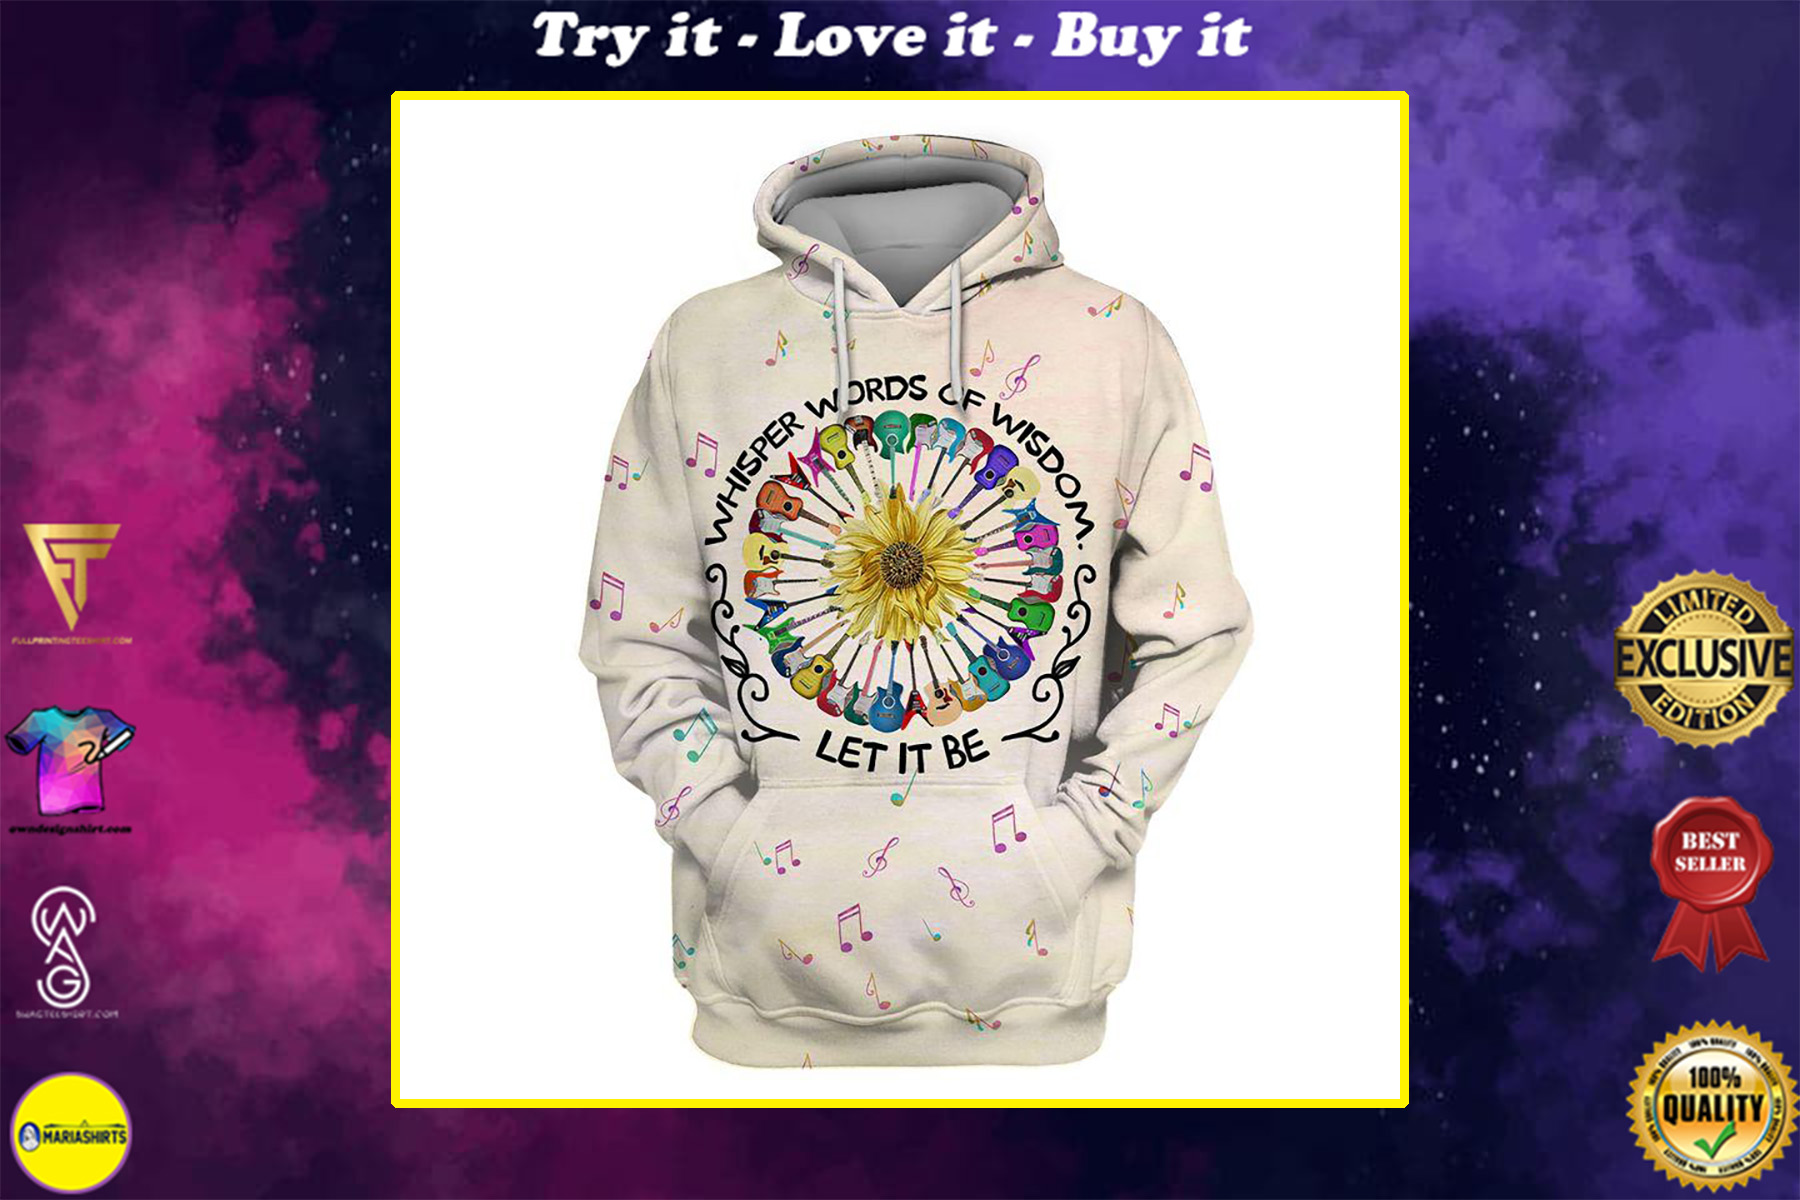 whisper words of wisdom let it be hippie colorful guitar all over printed shirt